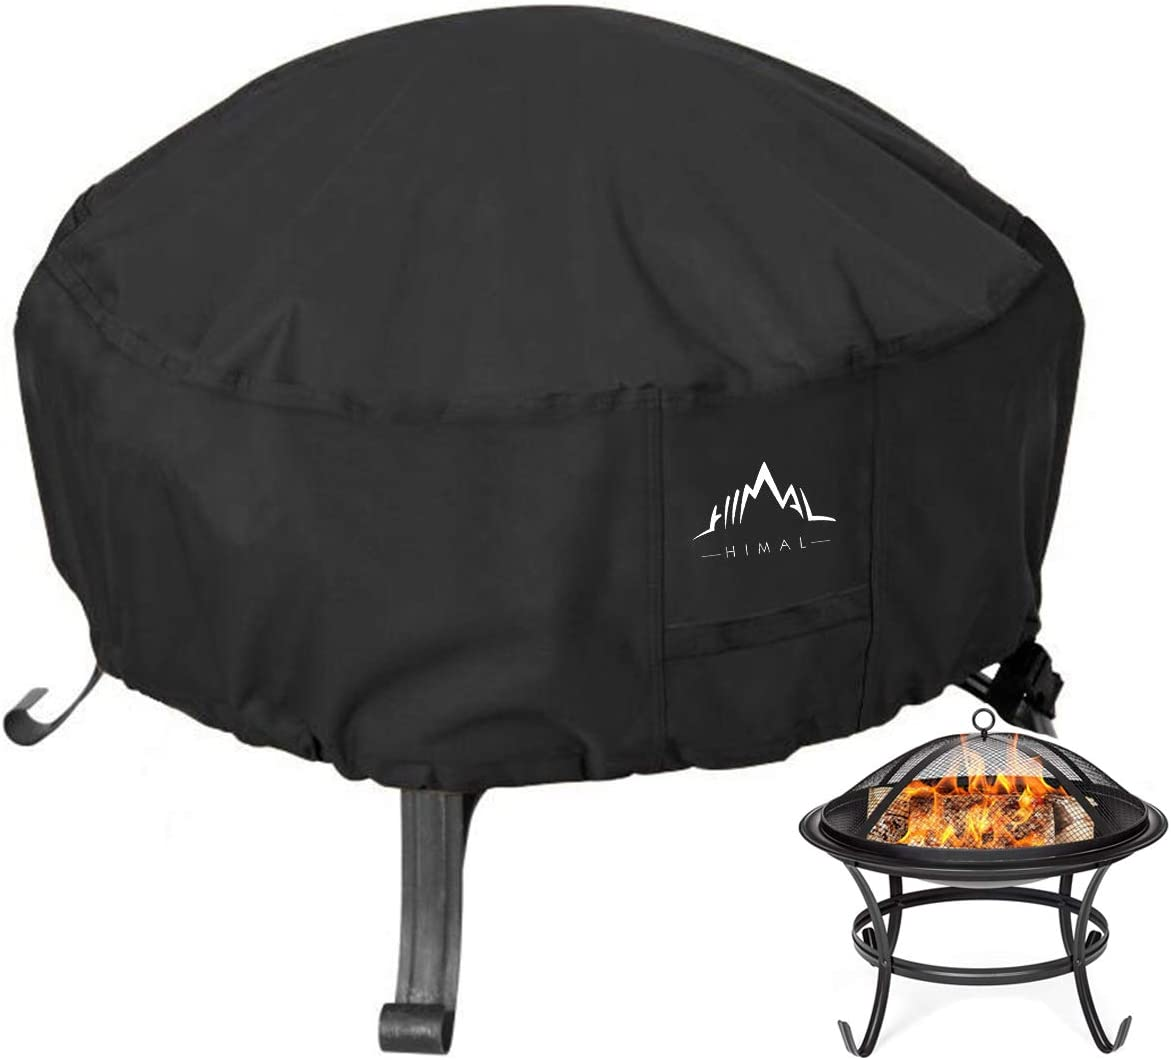 Himal Outdoors Fire Pit Cover- Heavy Duty Waterproof 600D Polyster with Thick PVC Coating, Round Fire Pit Cover, Waterproof, 36 Inch, Black